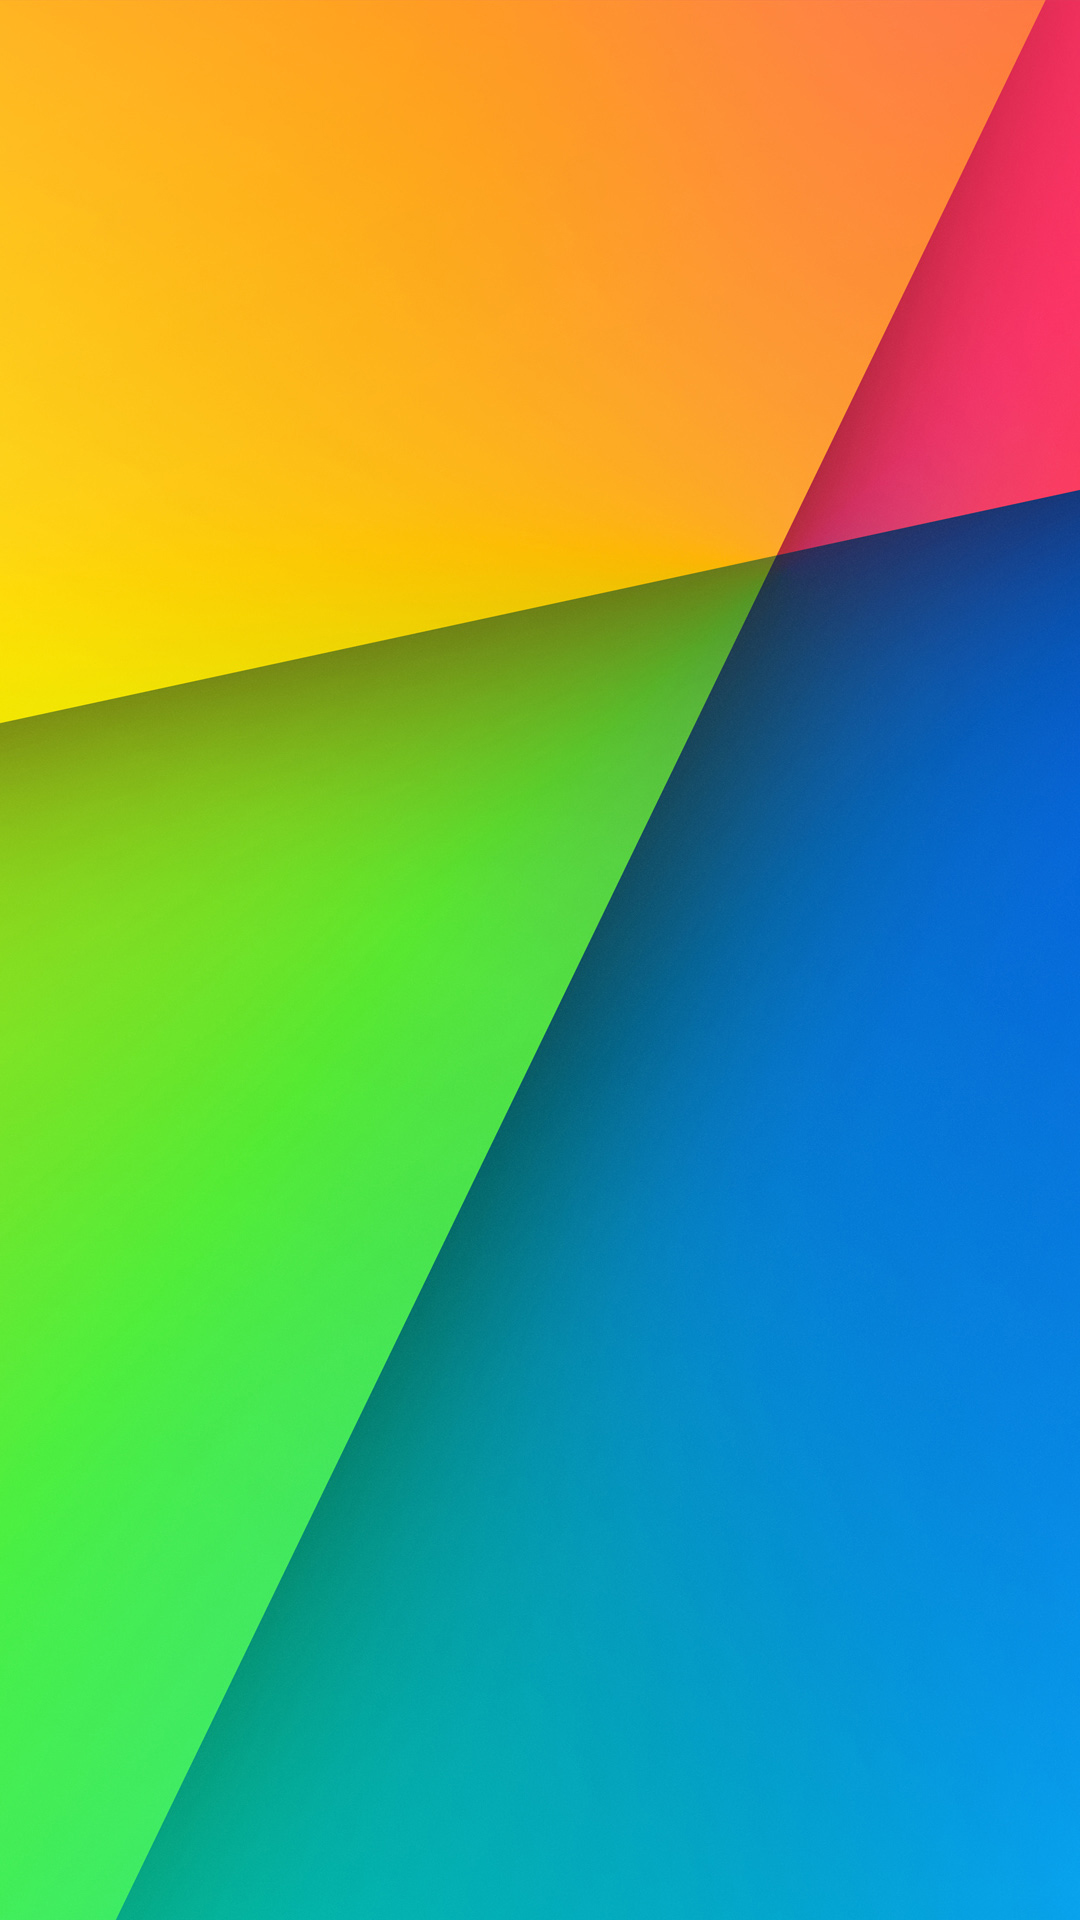 Android Official Wallpaper